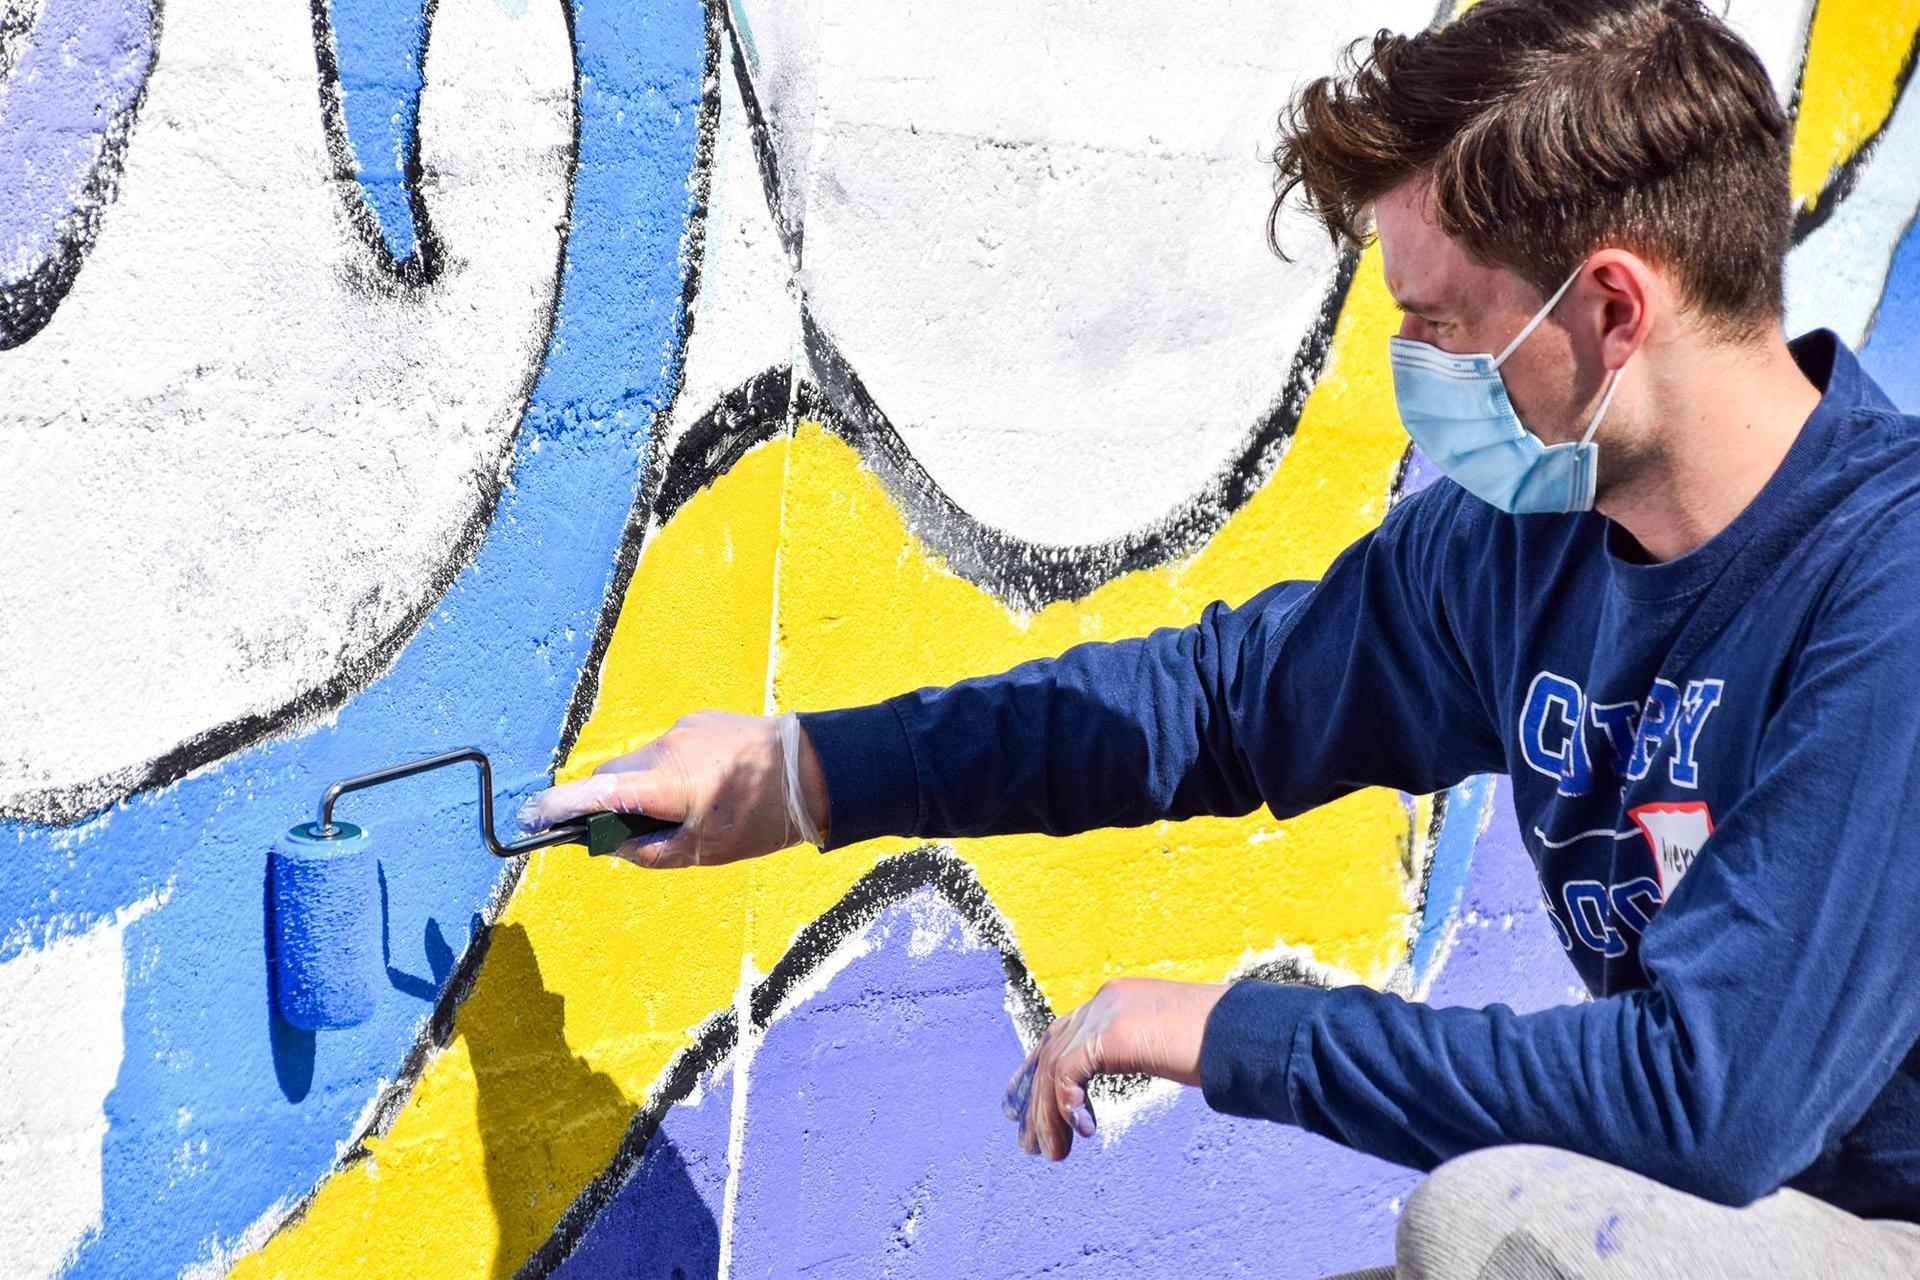 A person paints part of a mural on a wall